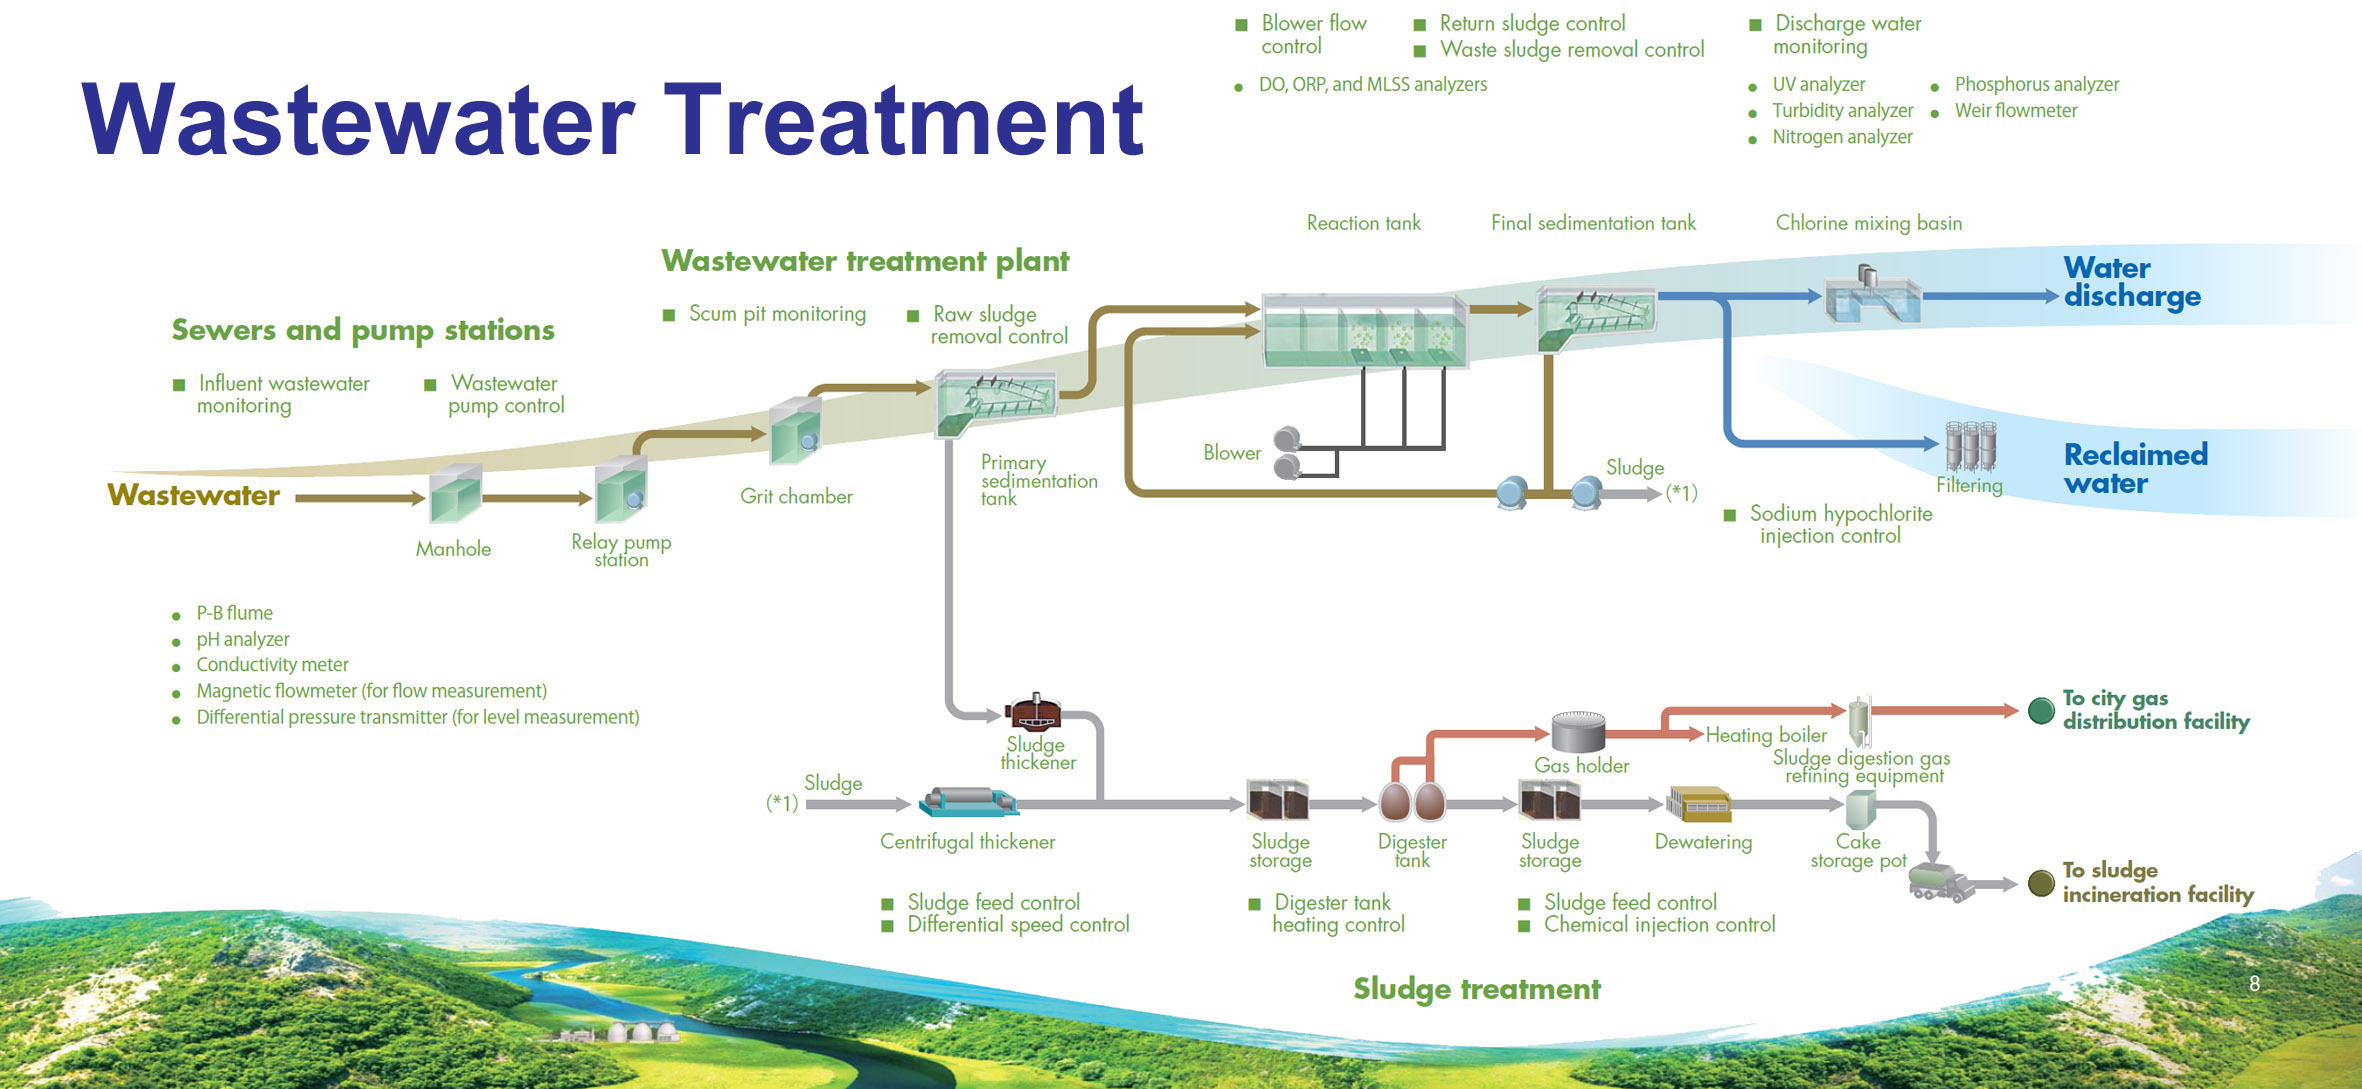 Wastewater treatment plant diagram sewer system diagram for Sewer system diagram